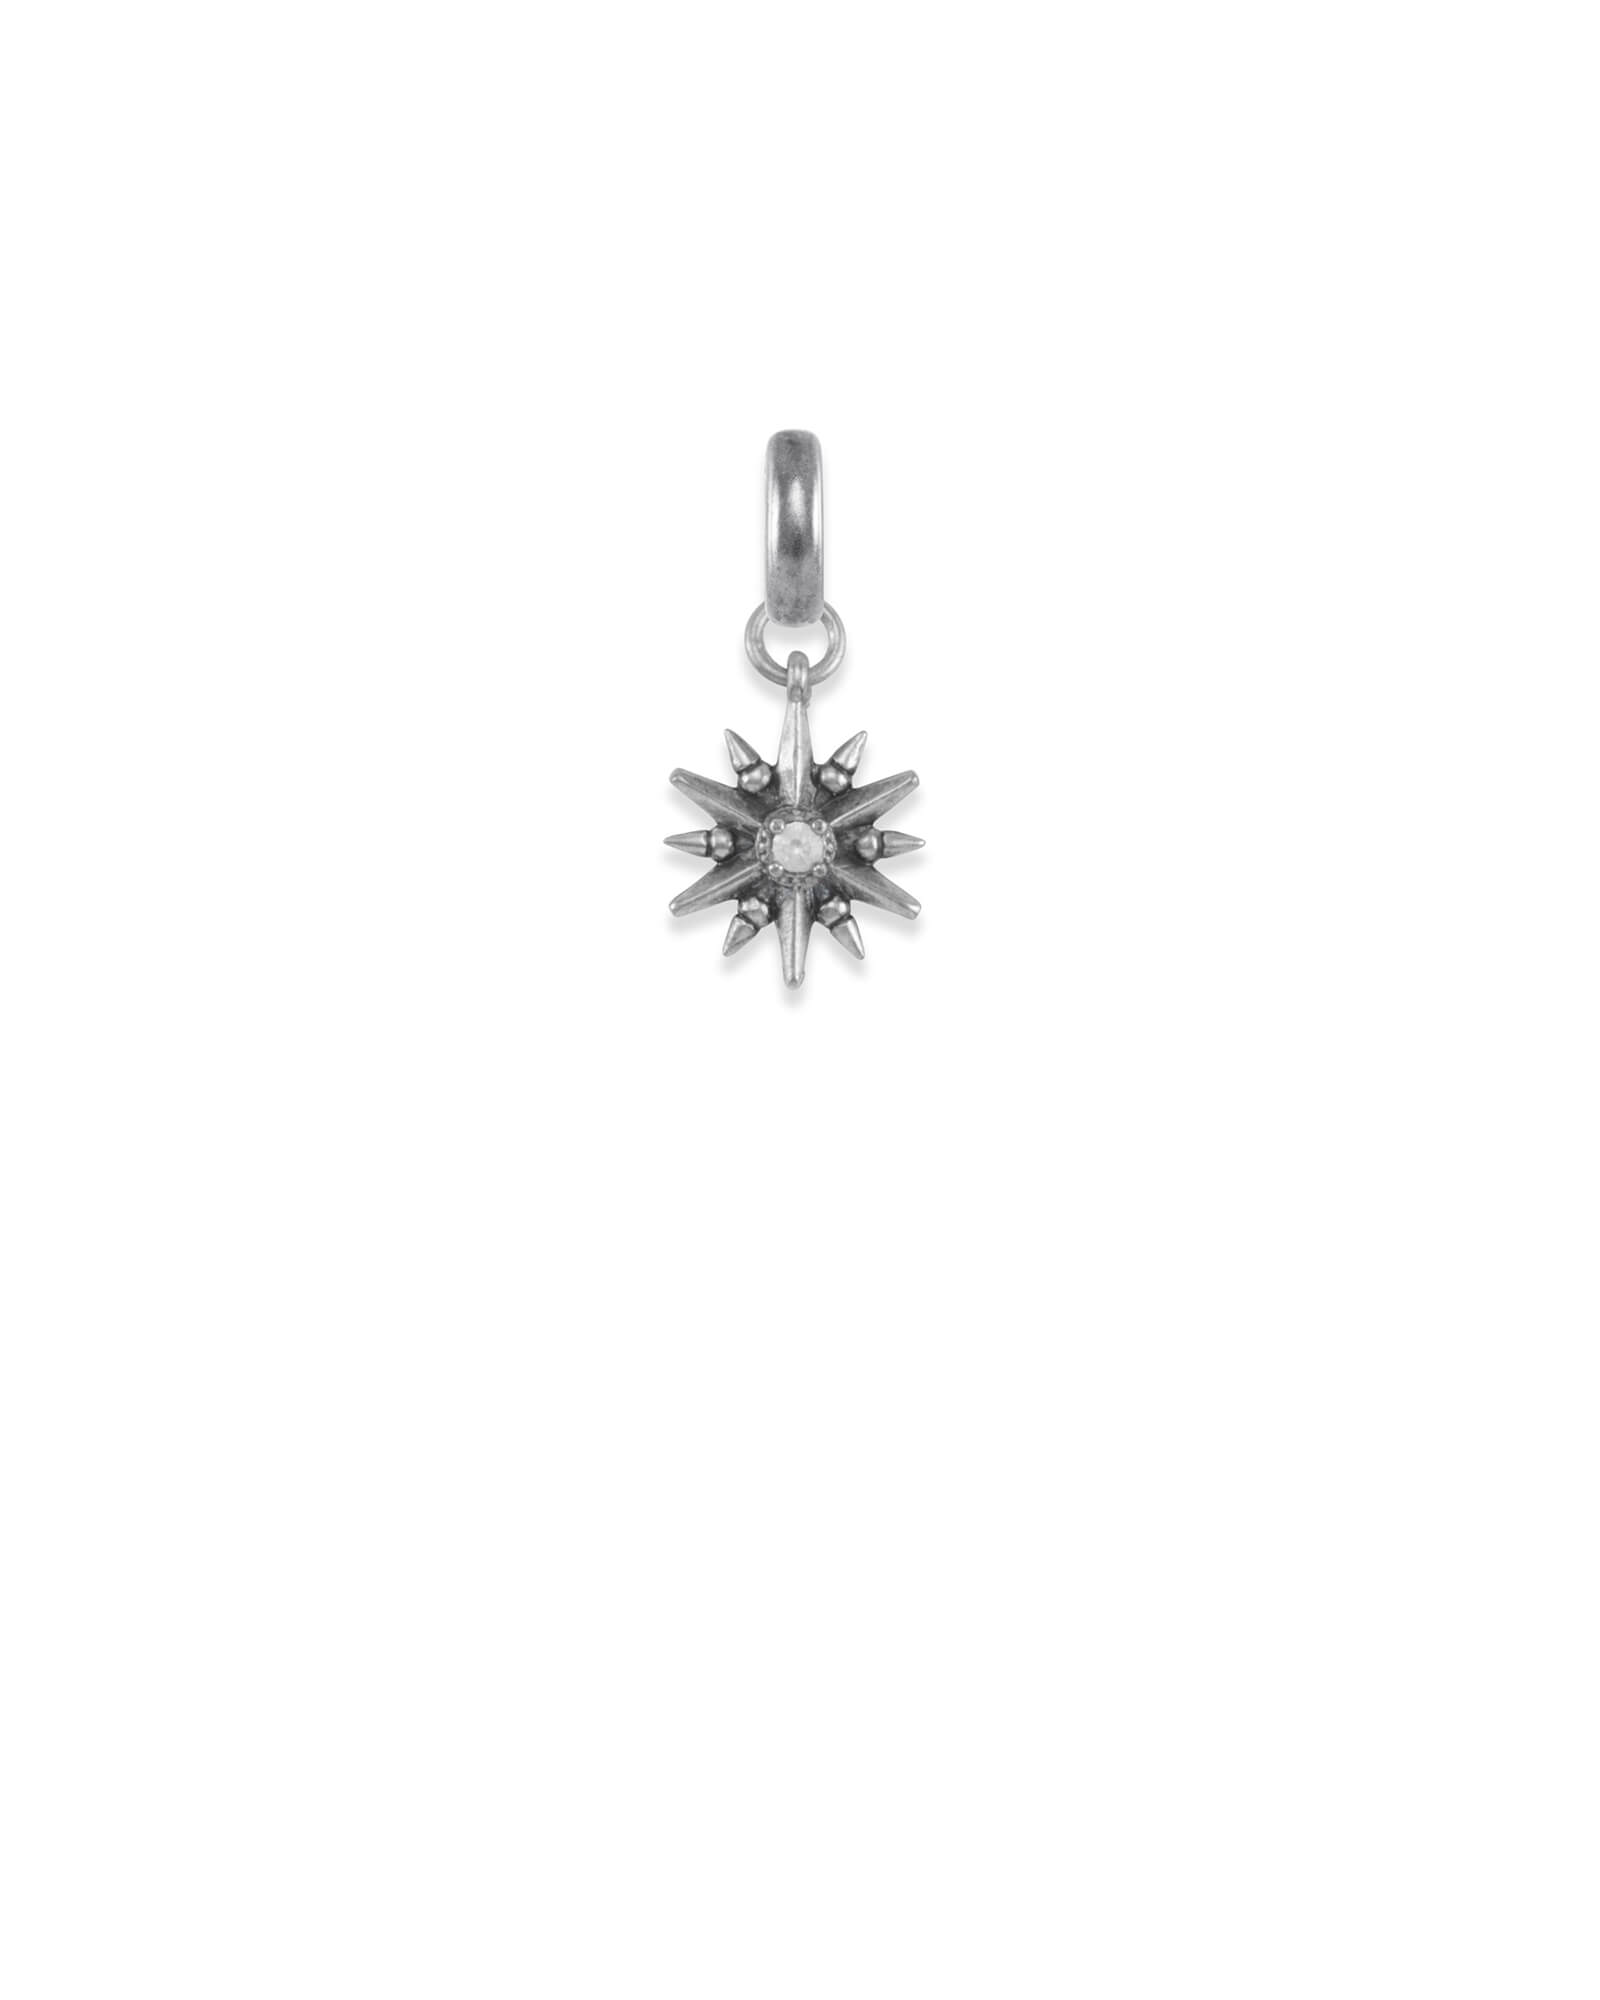 Star Charm in Vintage Silver